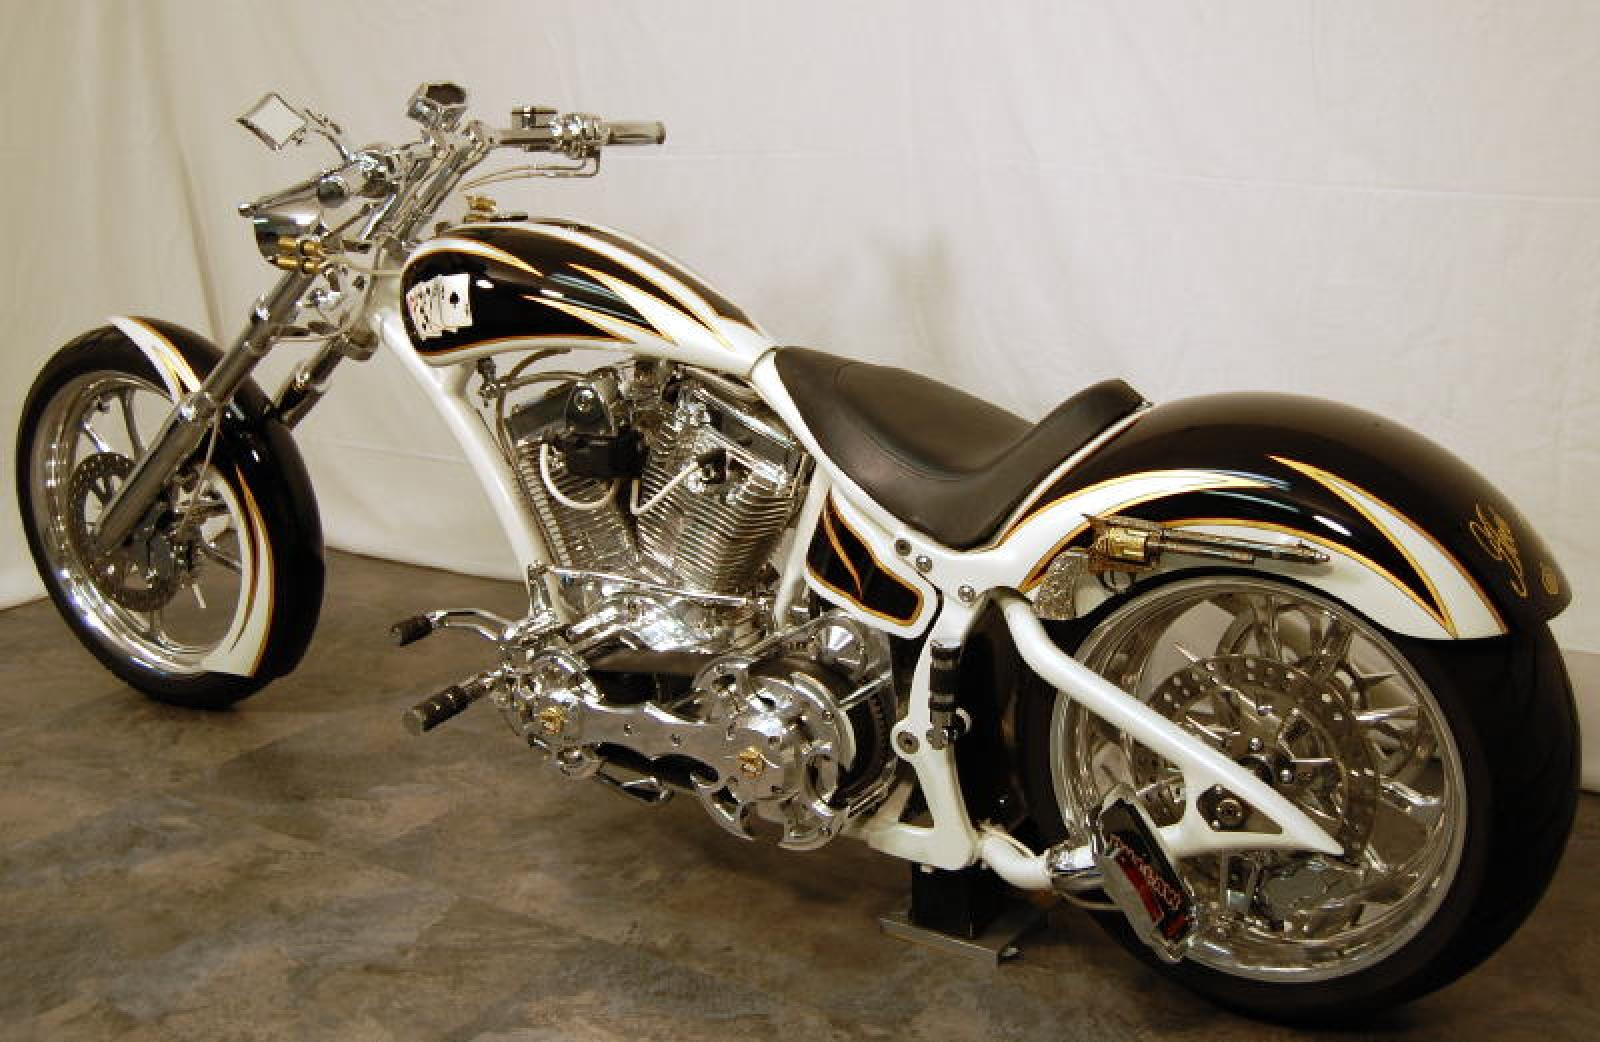 Big Bear Choppers Miss Behavin 100 Carb 2009 images #63747